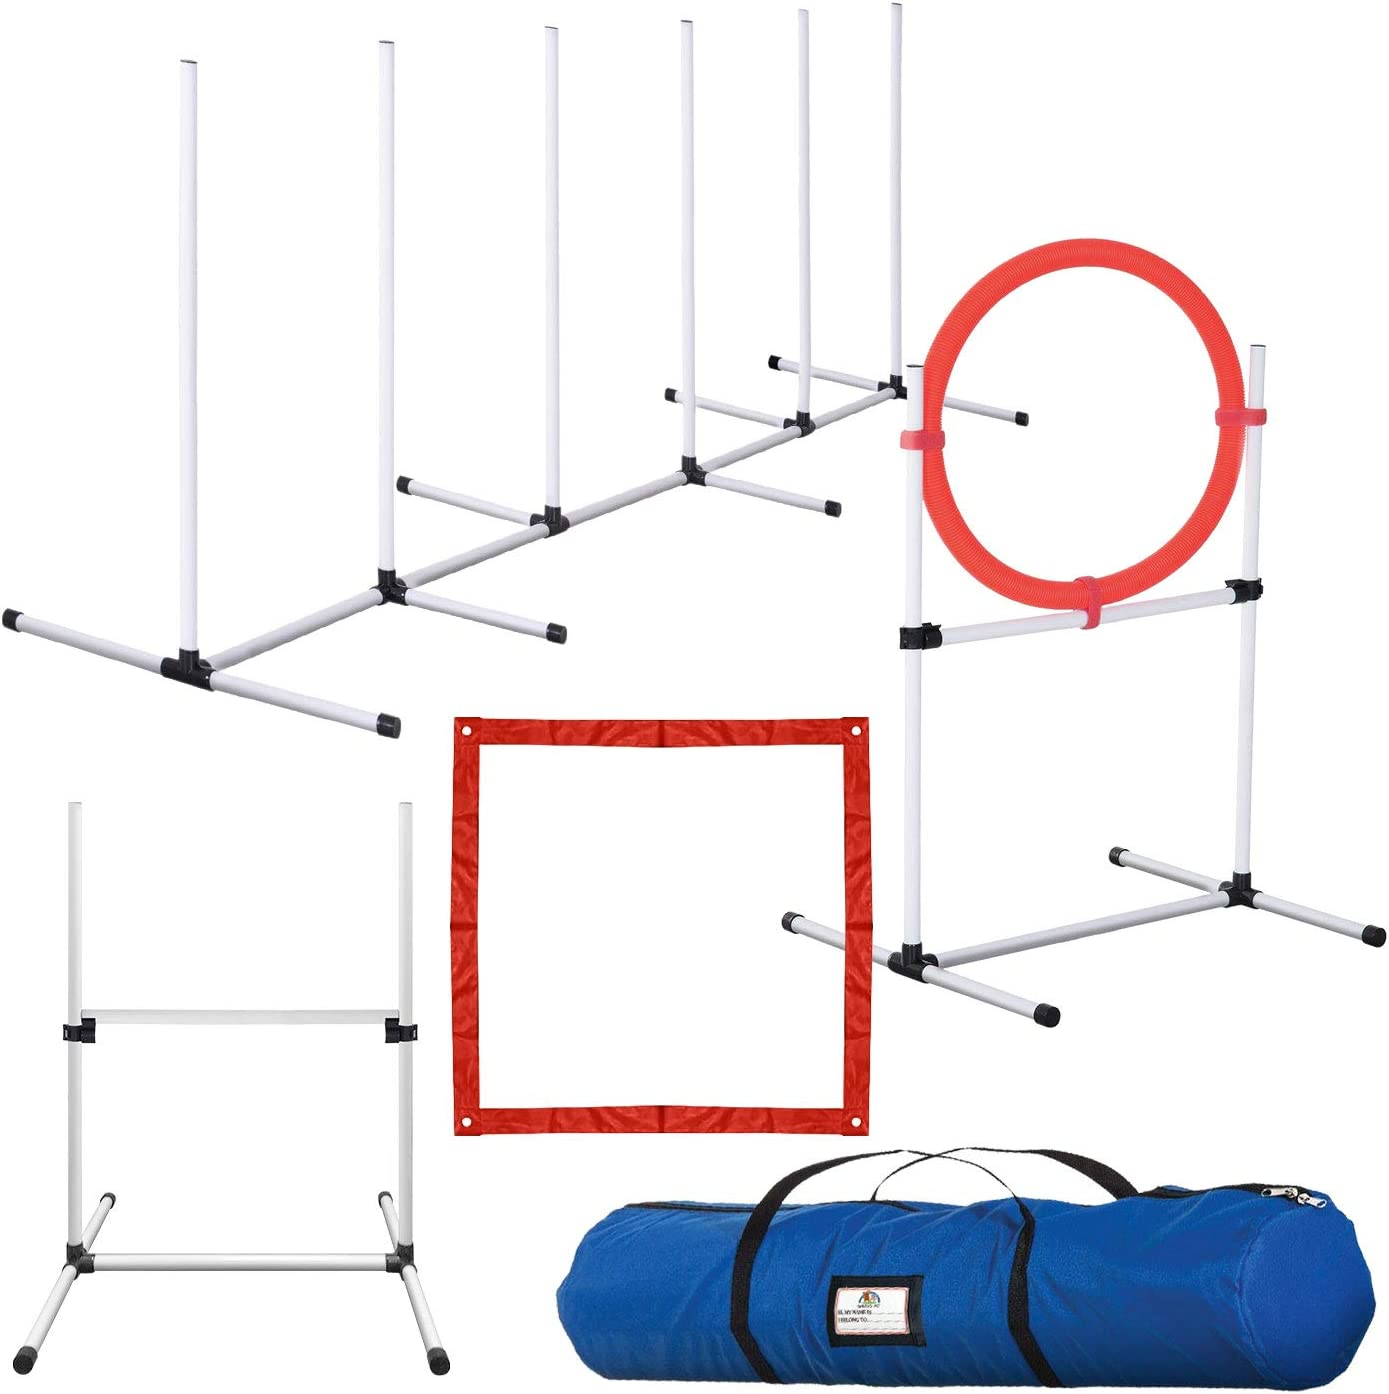 CHEERING PET, Dog Agility Training Equipment, 4 Piece Dog Obstacle Course Includes Dog Jump, Tire Jump, Pause Box and Weave Poles with Carrying Case, Indoor or Outdoor Dog Agility Training